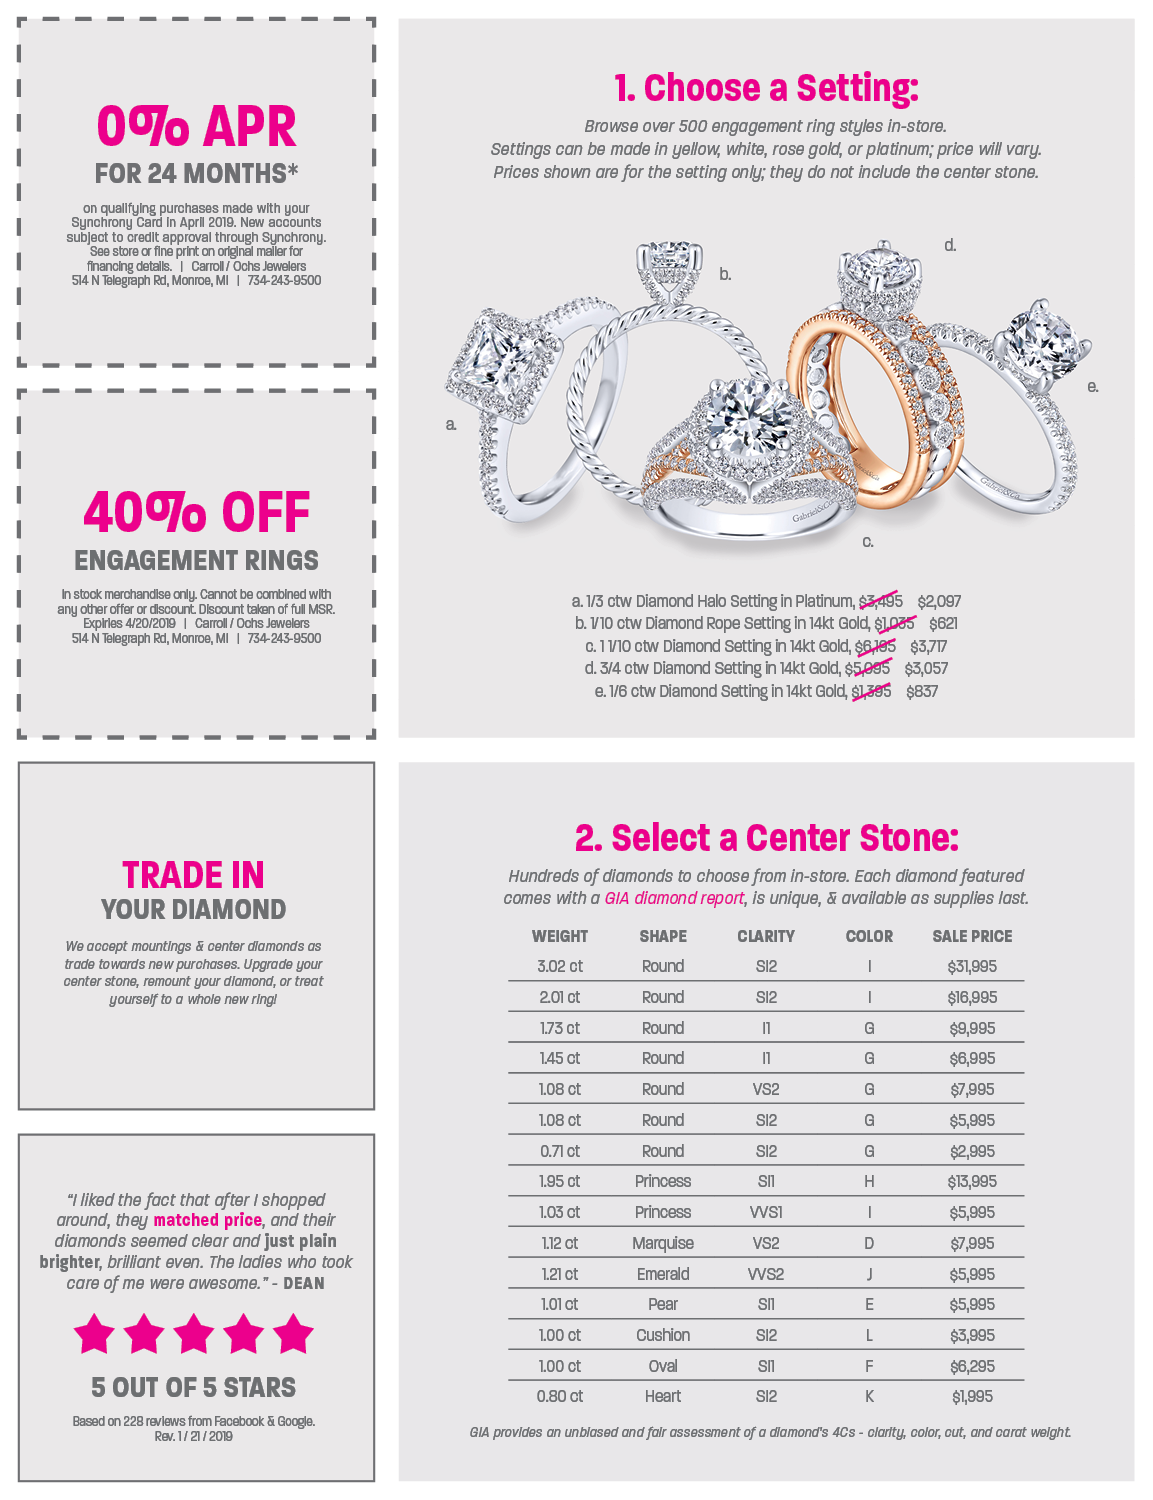 0% APR Financing, 40% off Engagement Rings, Jewelry Trade In, Loose Diamonds